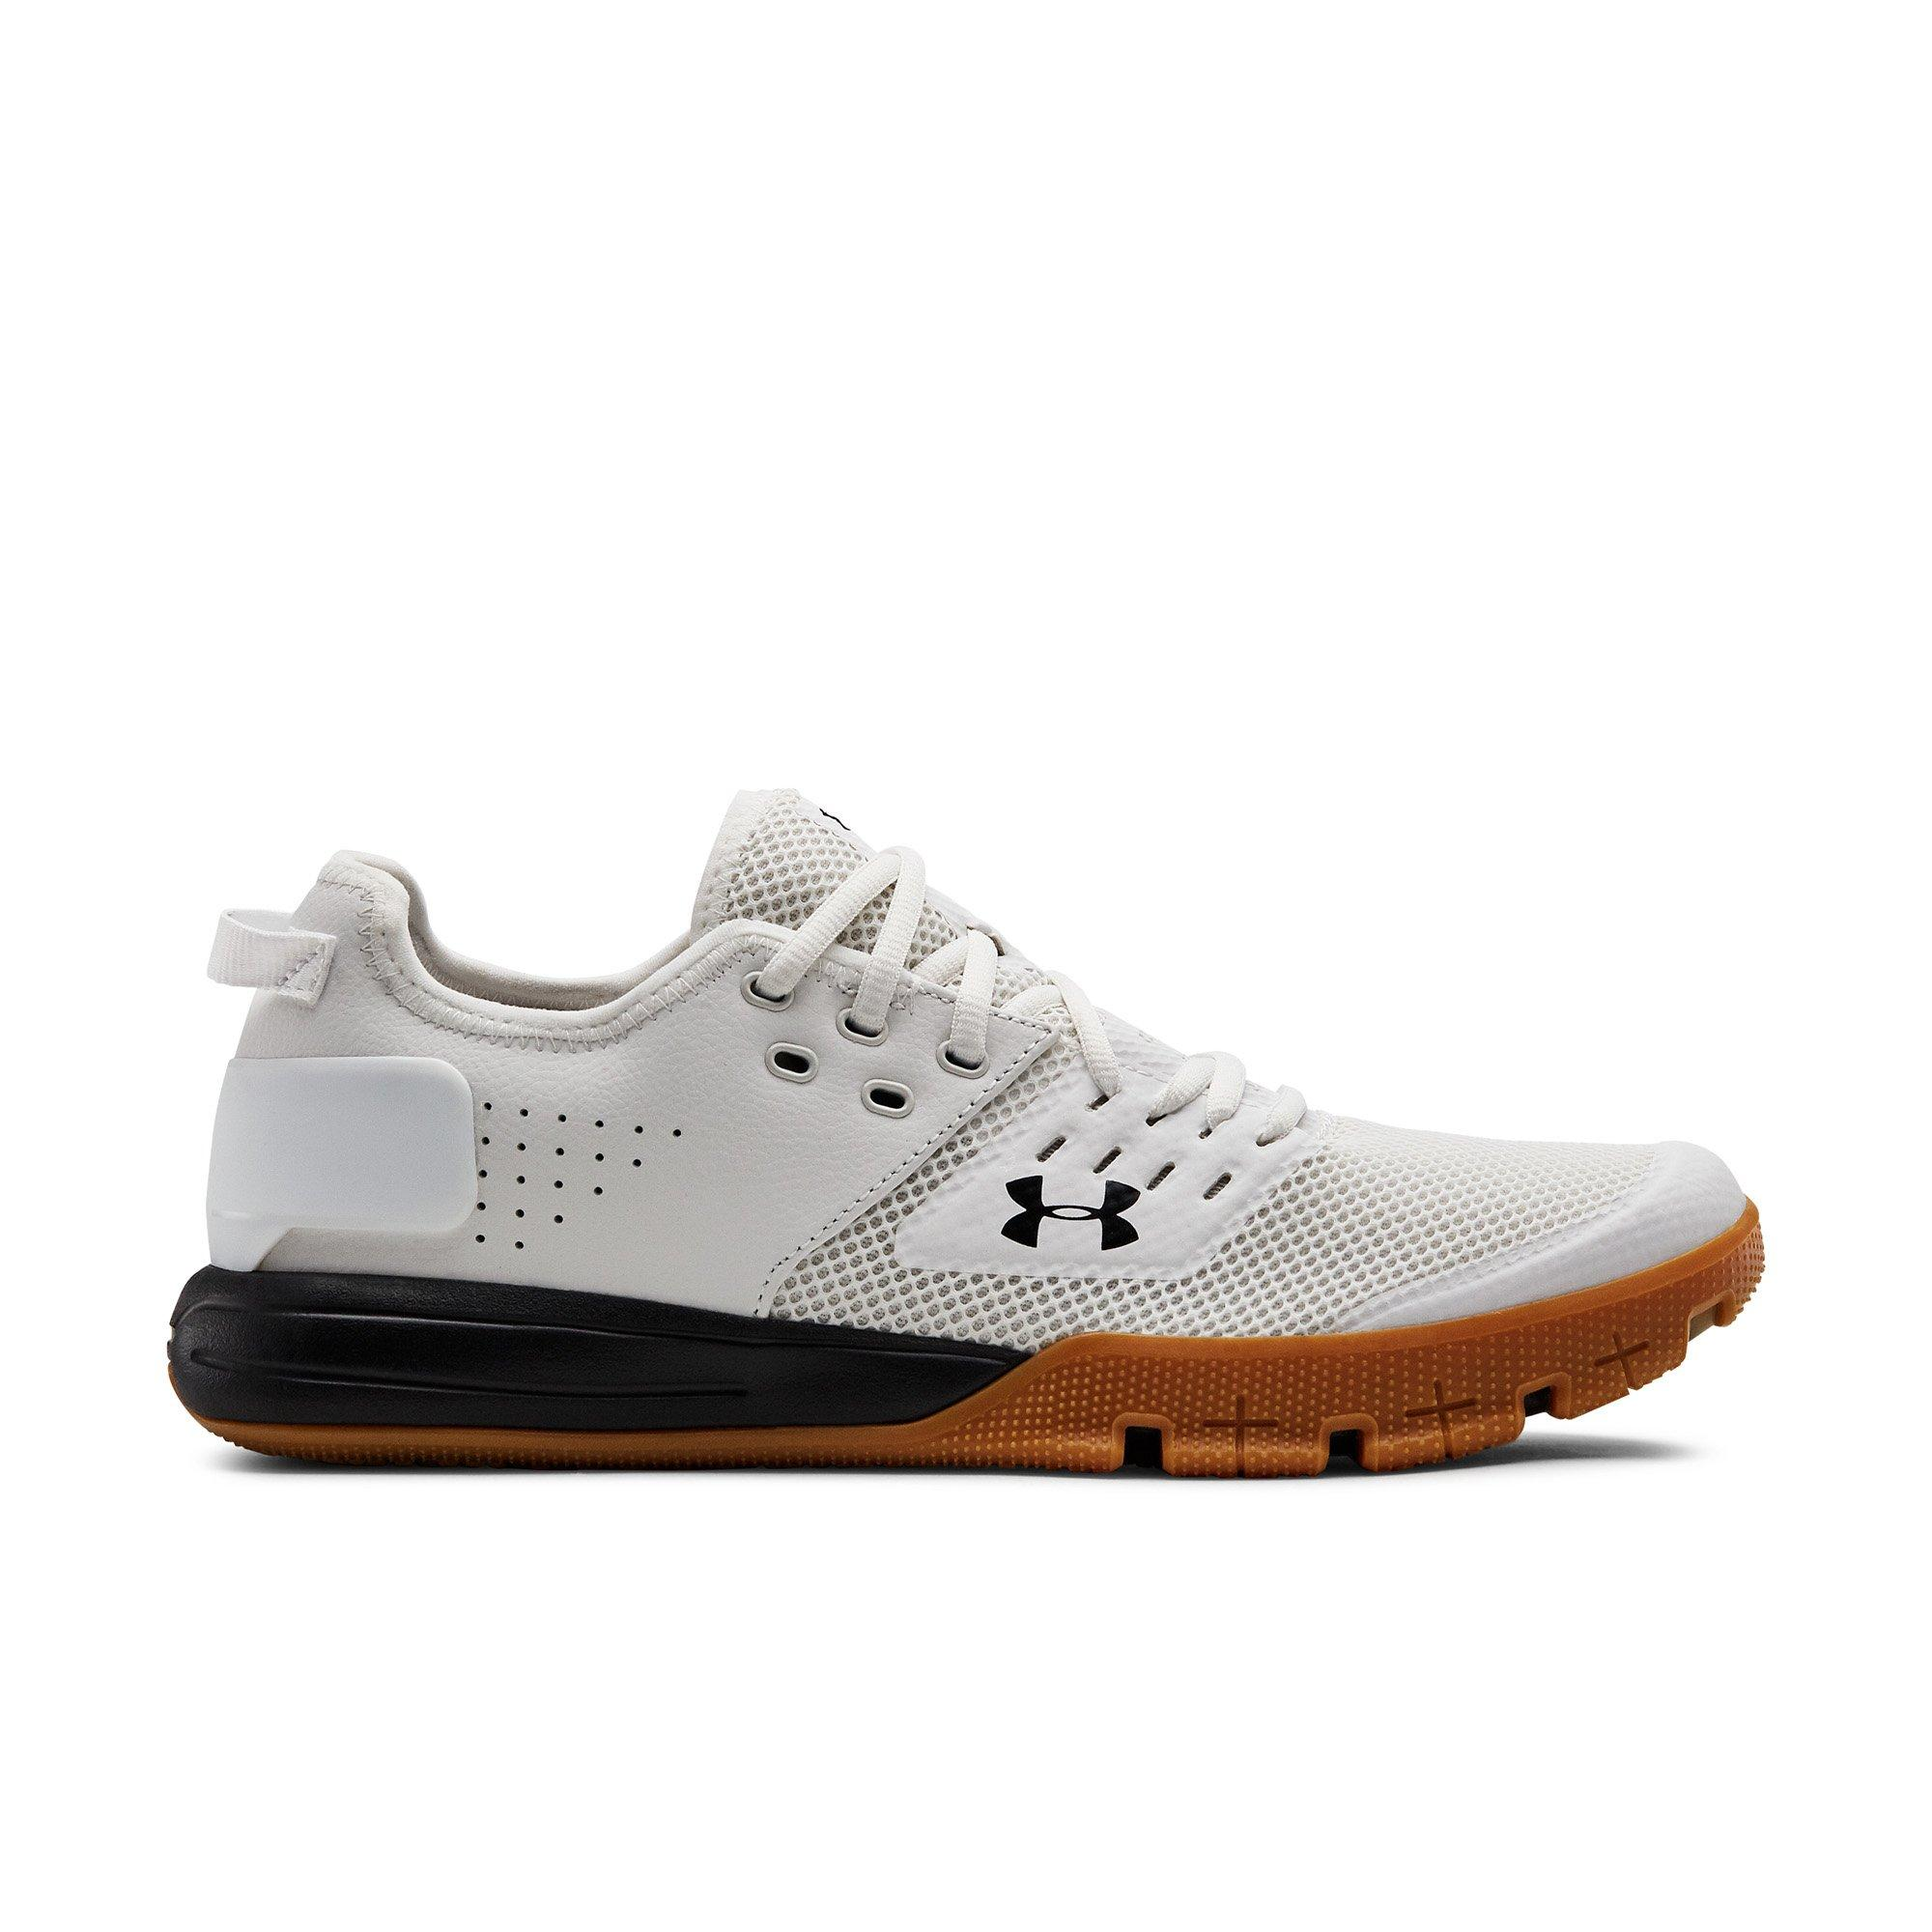 Under Armour Mens Charged Ultimate 3.0 Sneaker